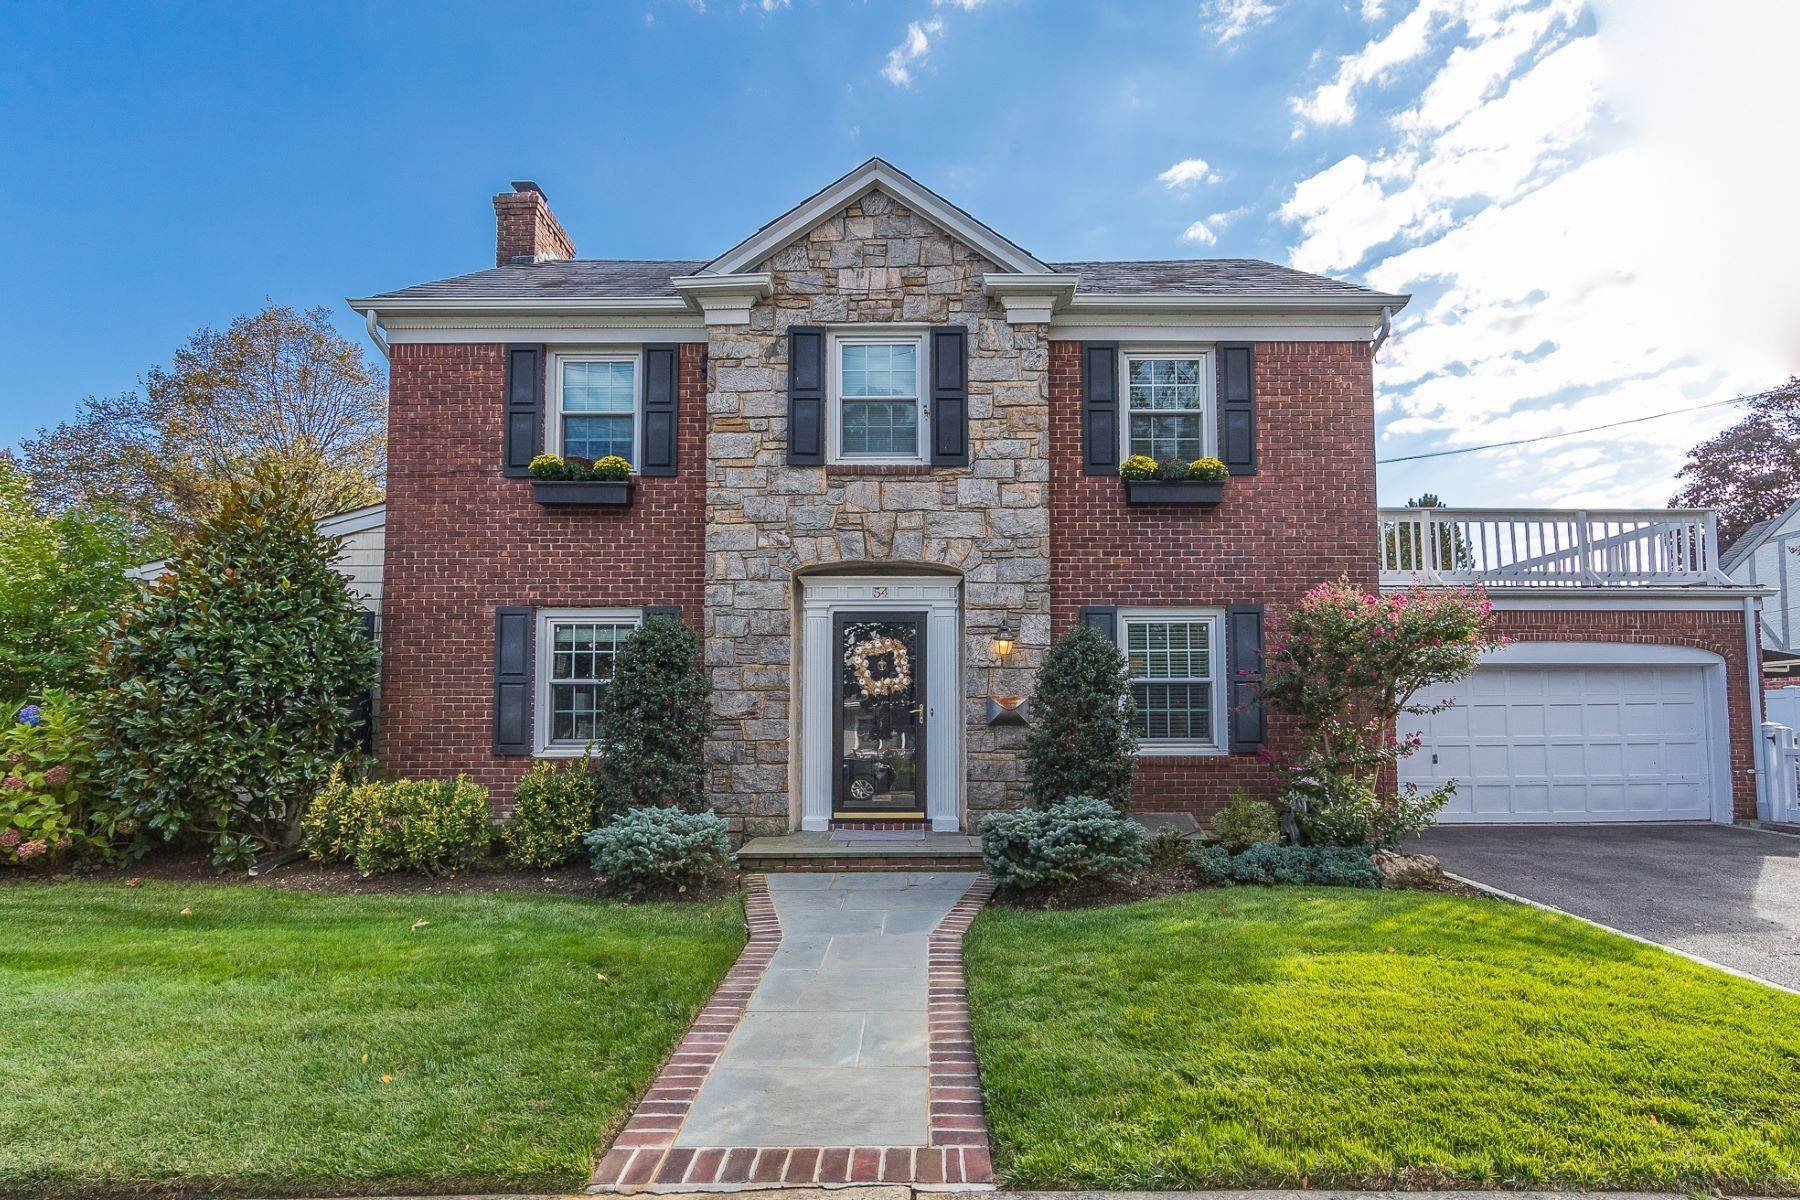 Single Family Homes for Sale at 54 Fountain Ave, Rockville Centre, Ny, 11570 54 Fountain Ave Rockville Centre, New York 11570 United States